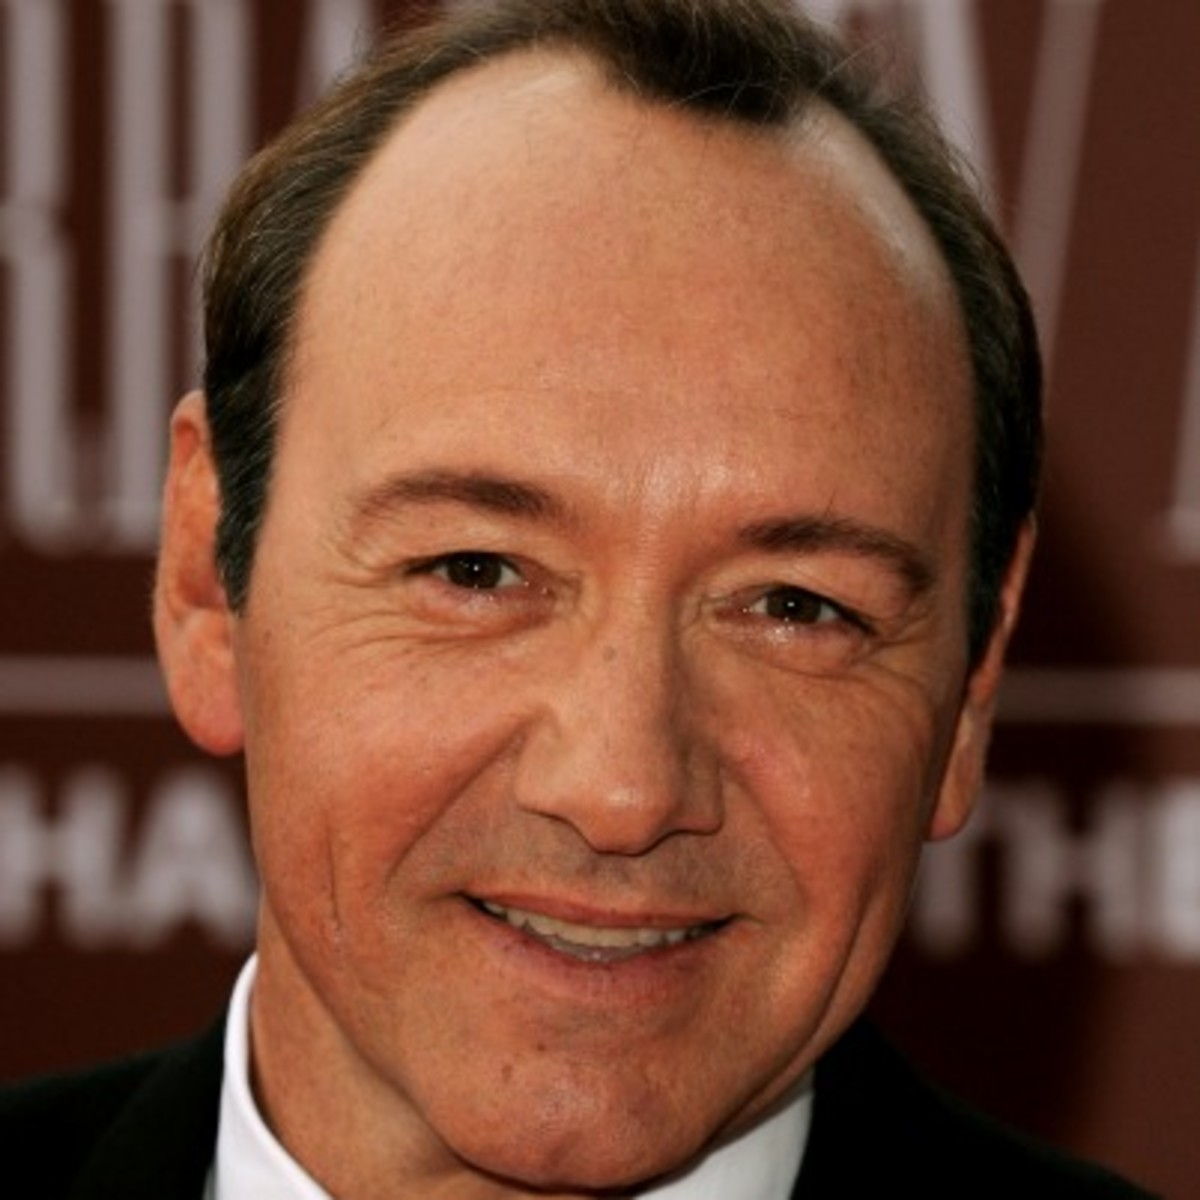 kevin spacey online course